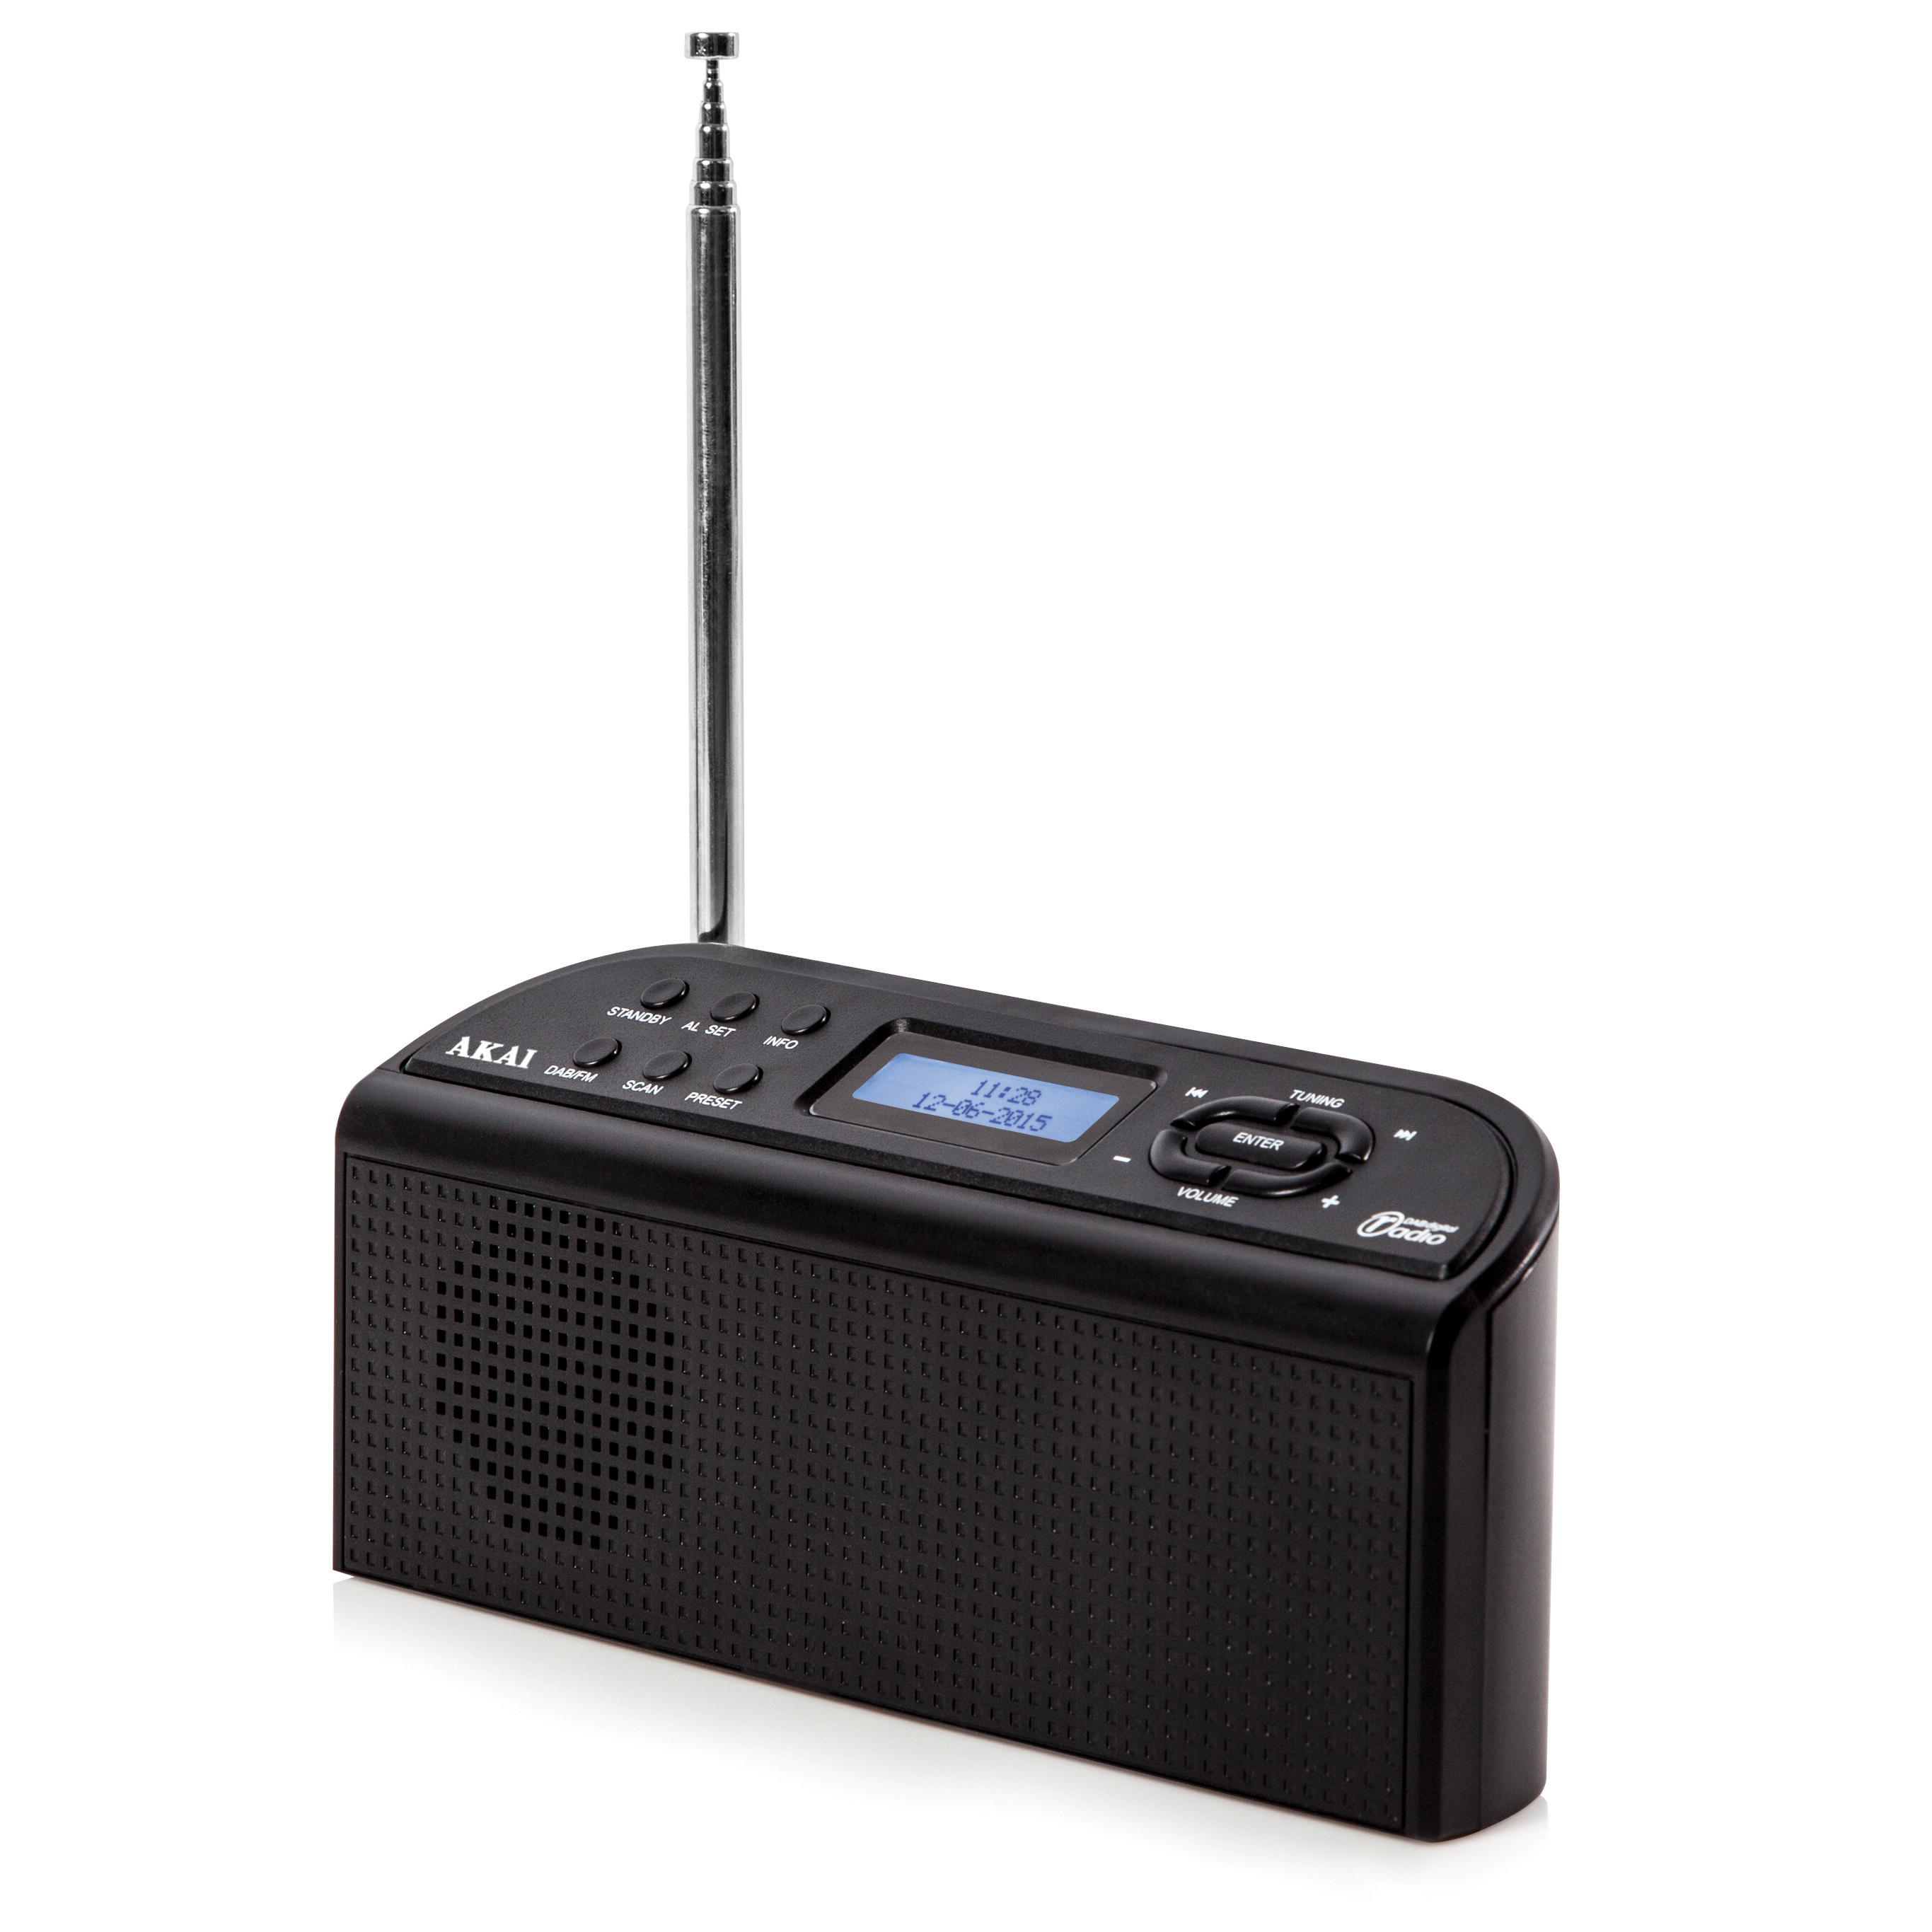 Akai Dab Digital Radio - Black No Colour